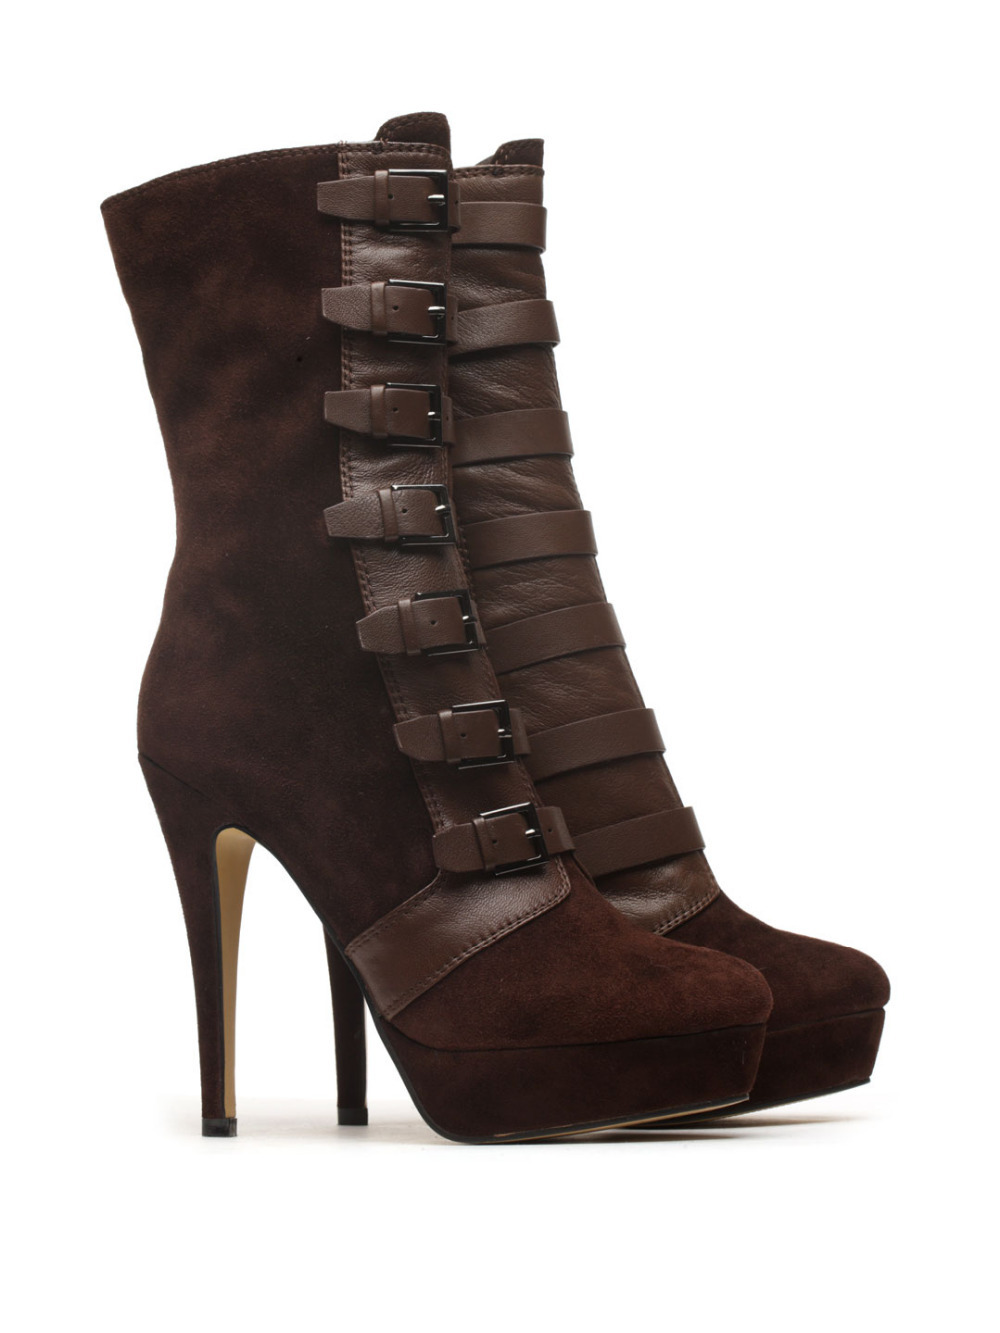 ФОТО Basic Editions Women Suede Leather High Heel Buckles Winter Ankle Short Boots - V850B-8-16